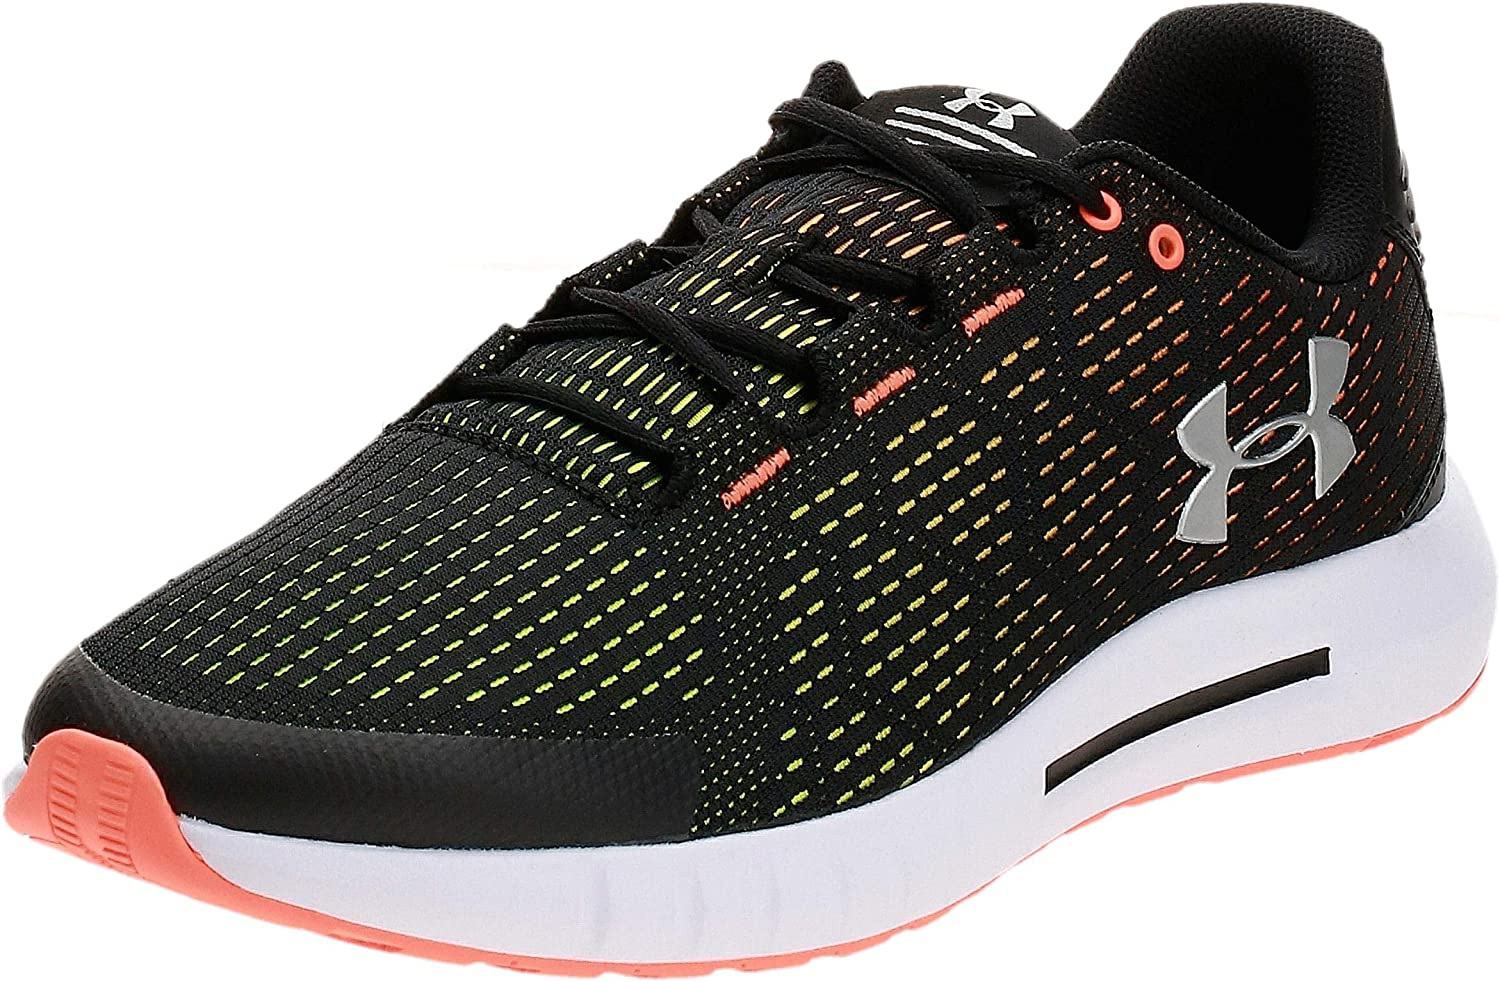 Under Armour UA Micro G Pursuit Se, Zapatillas de Running para Hombre: Amazon.es: Zapatos y complementos